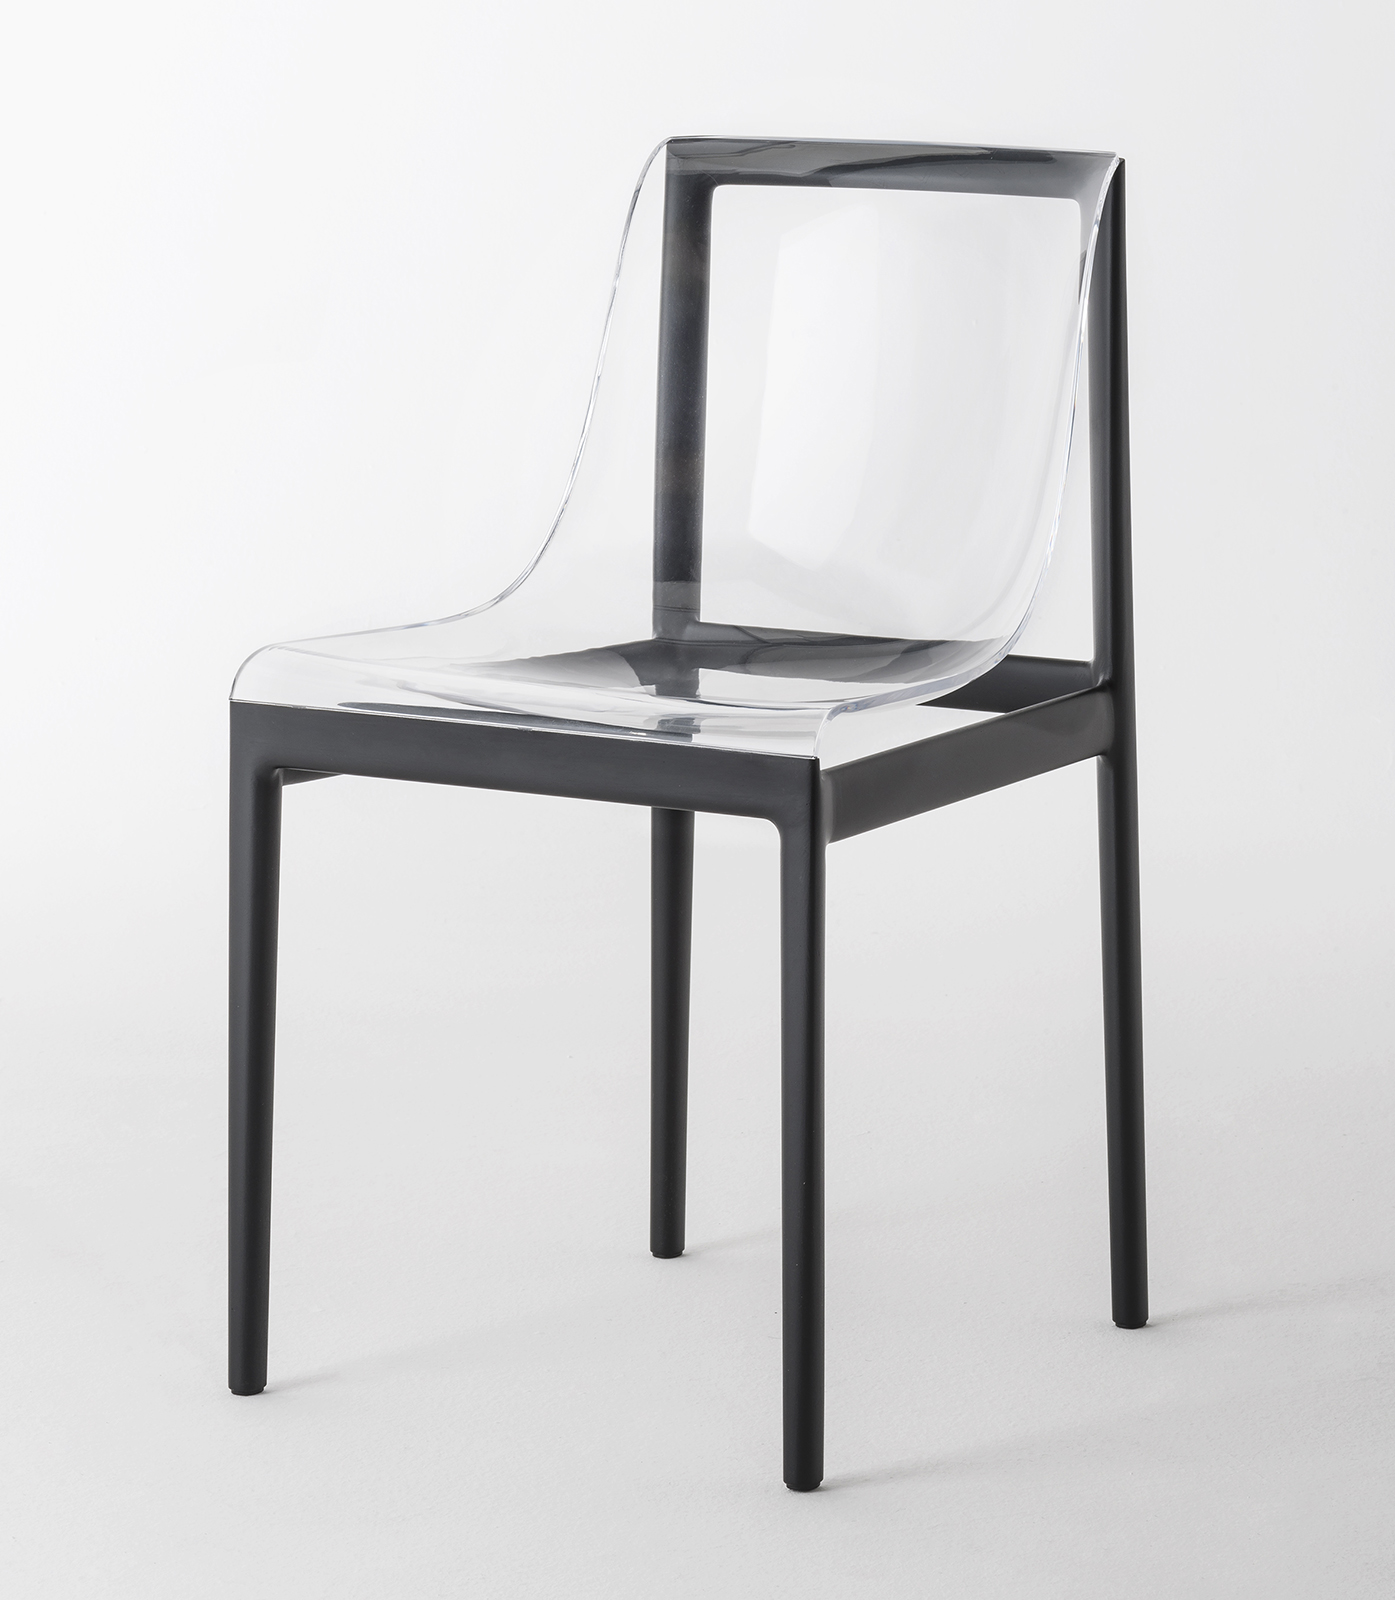 04_DREAM'AIR_chair_black side